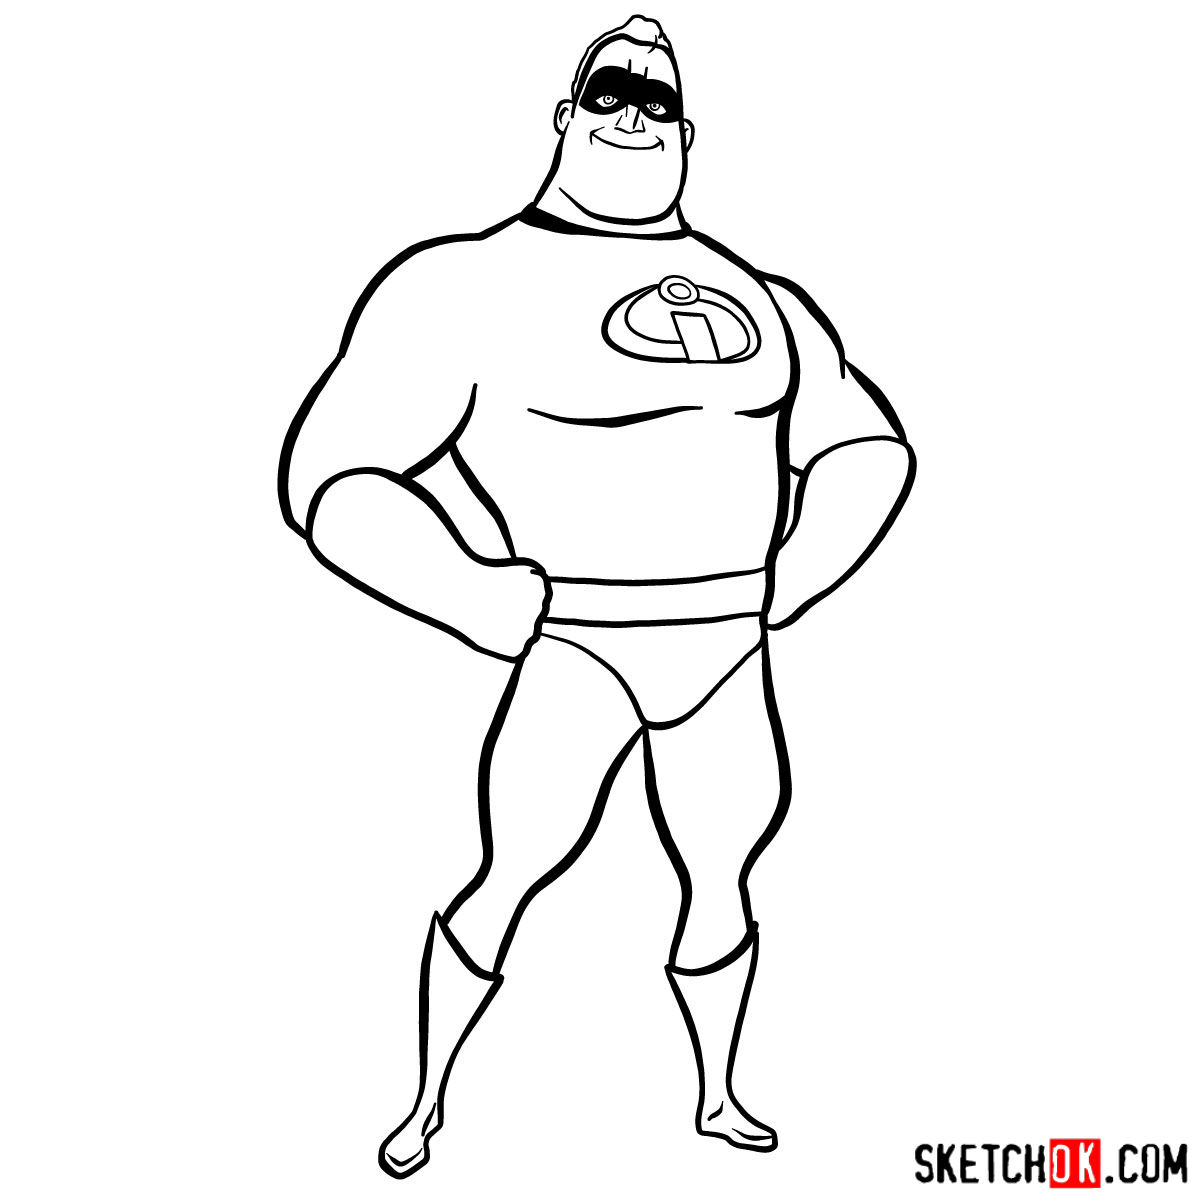 How to draw Bob Parr (Mr. Incredible) - step 10